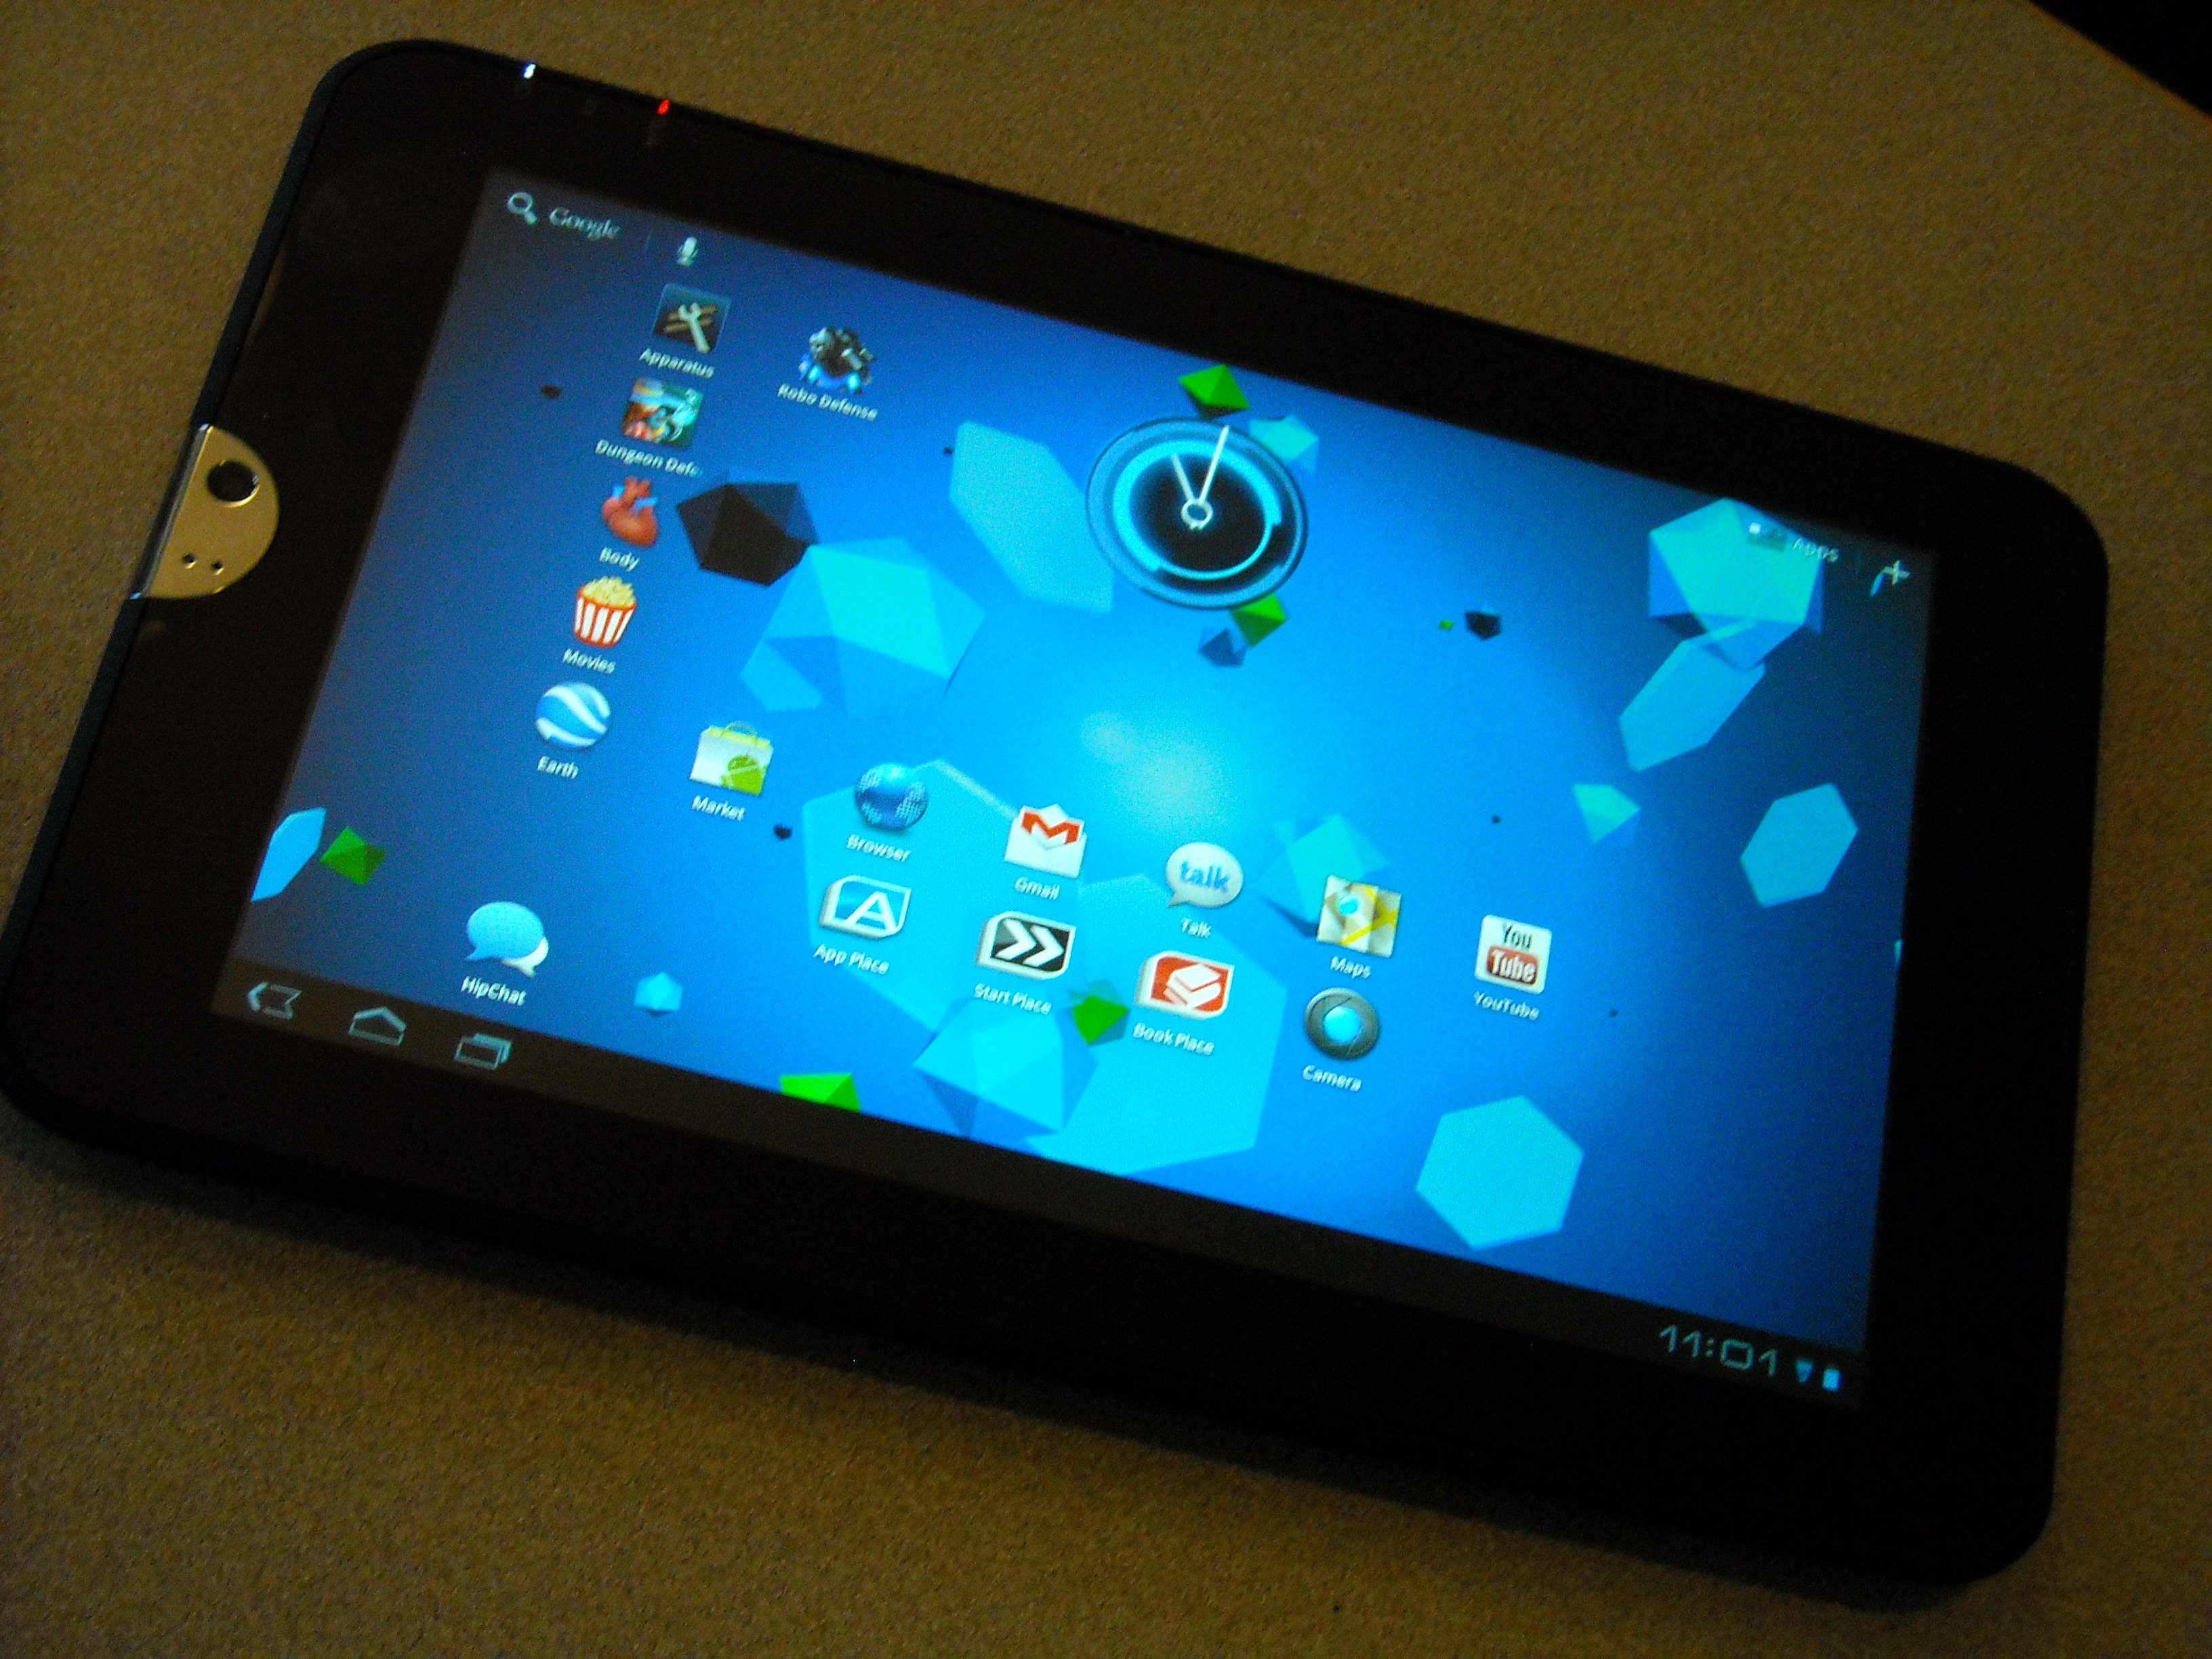 Toshiba Thrive Honeycomb Tablet Re-Review: Let's Try This ...